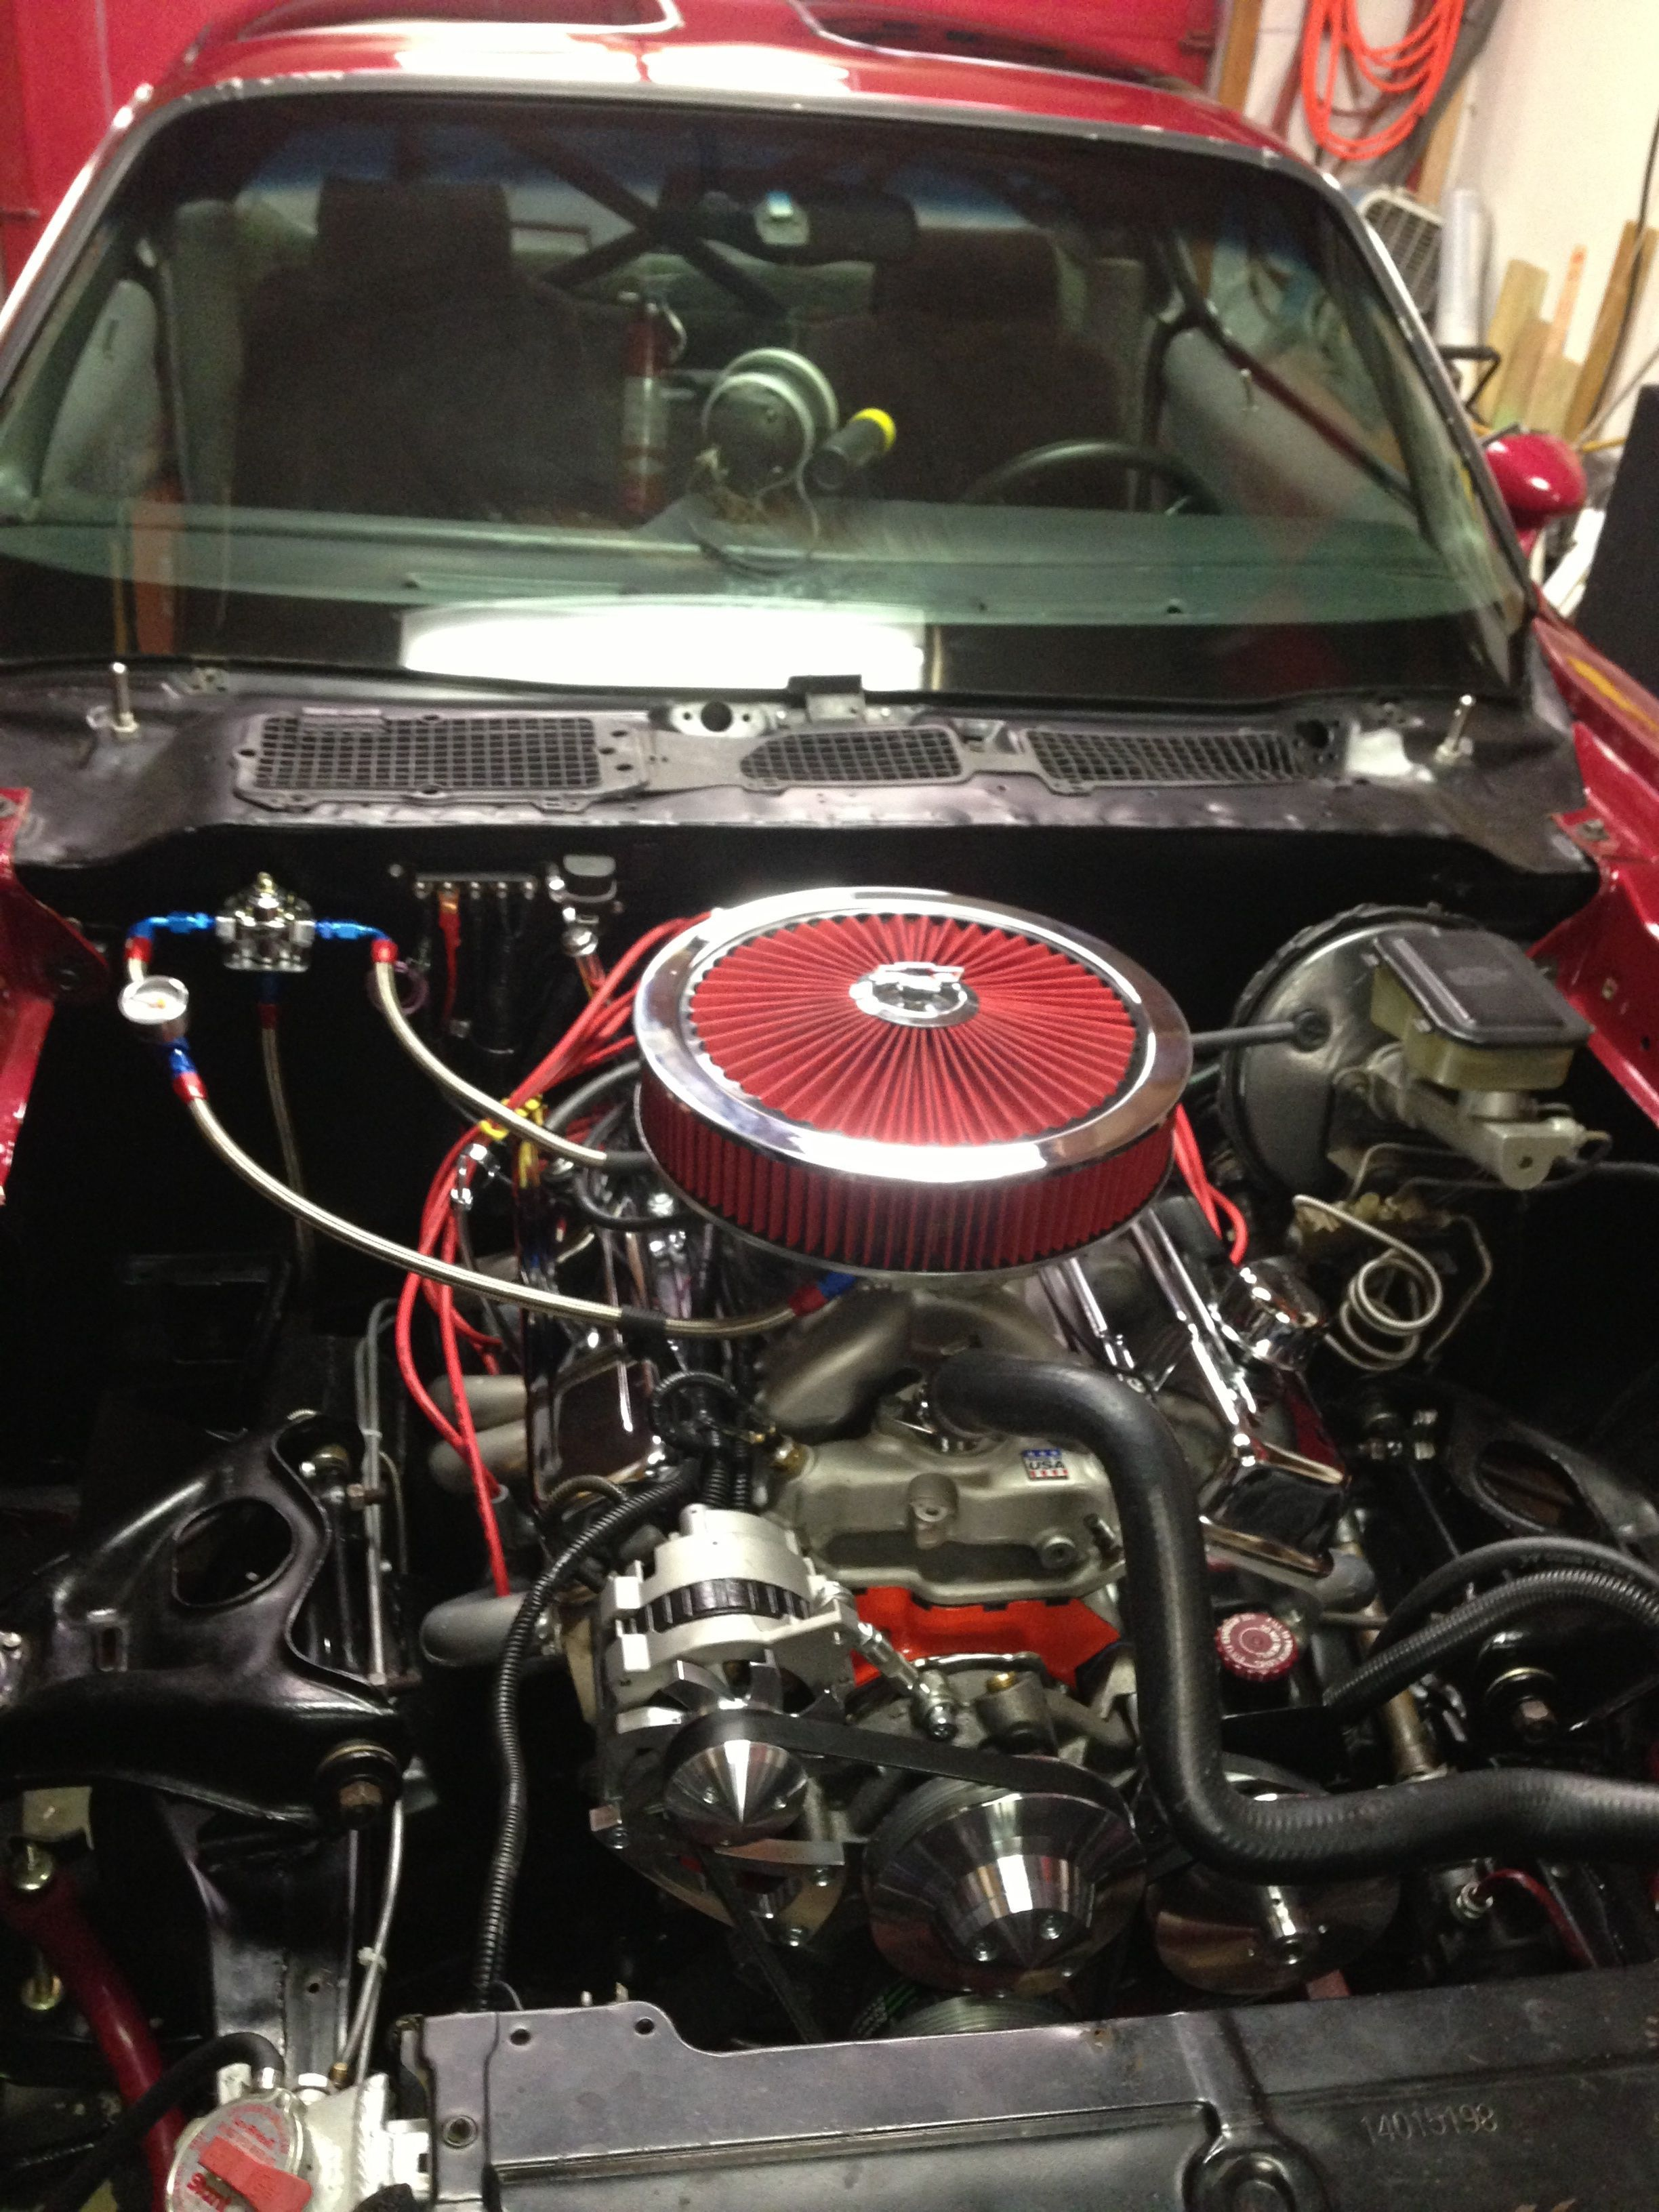 383ci stroker crate engine small block gm style longblock james purchased our bp38313ct1 a 383 base engine with aluminum heads and roller cam every blueprint engine is carefully dyno malvernweather Image collections